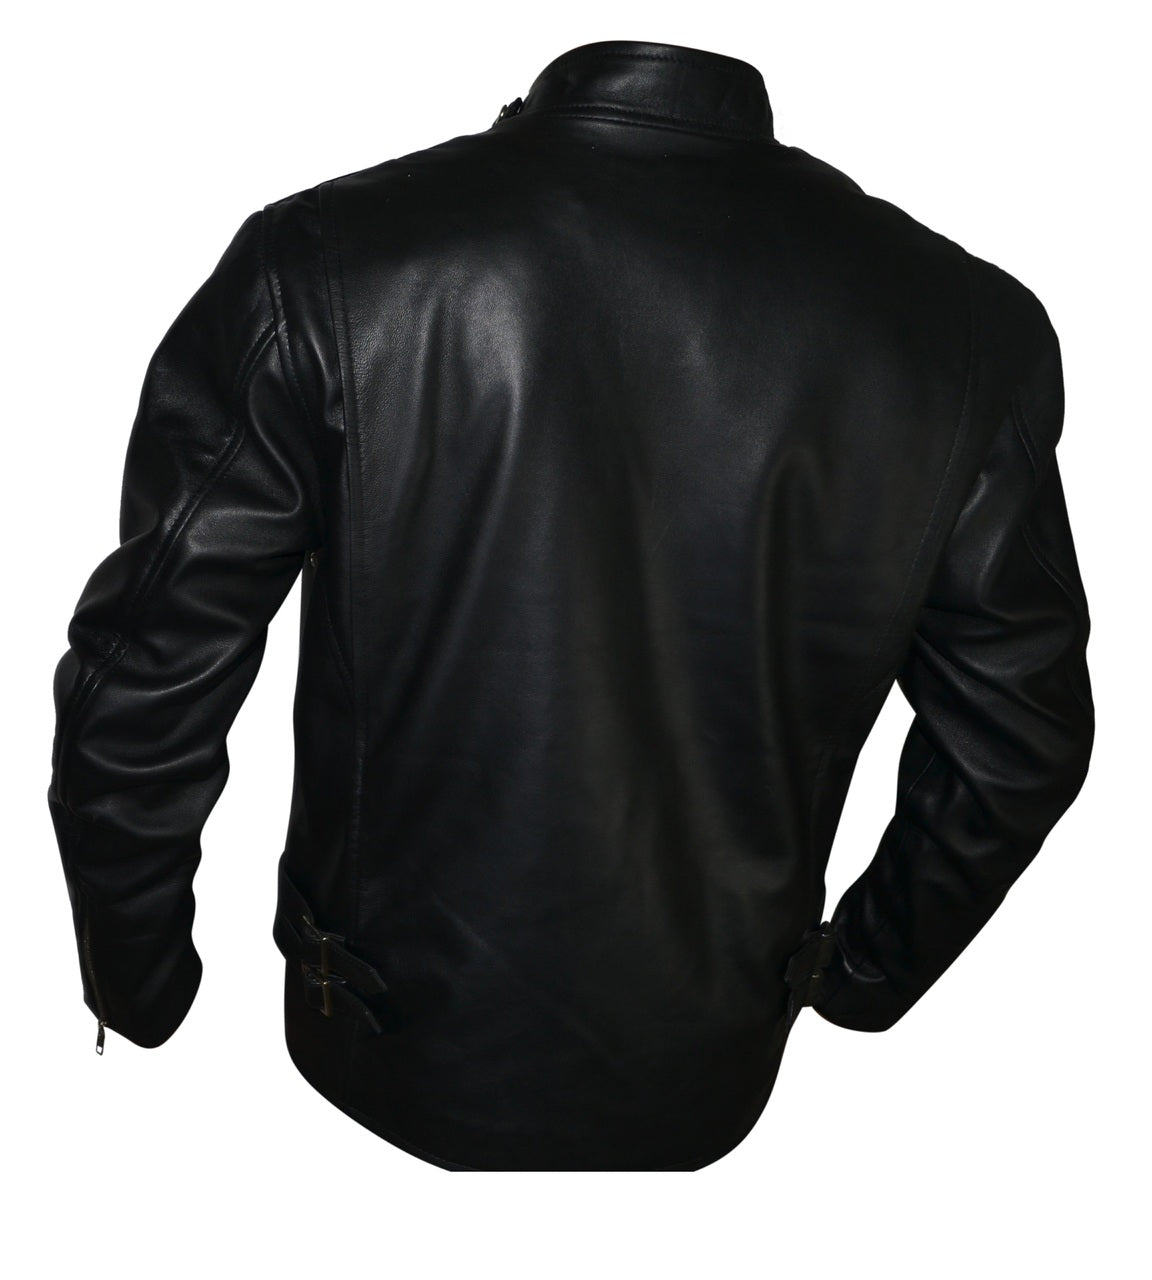 Men Designer Shoulder Padded Motorcycle Racer Leather Jacket